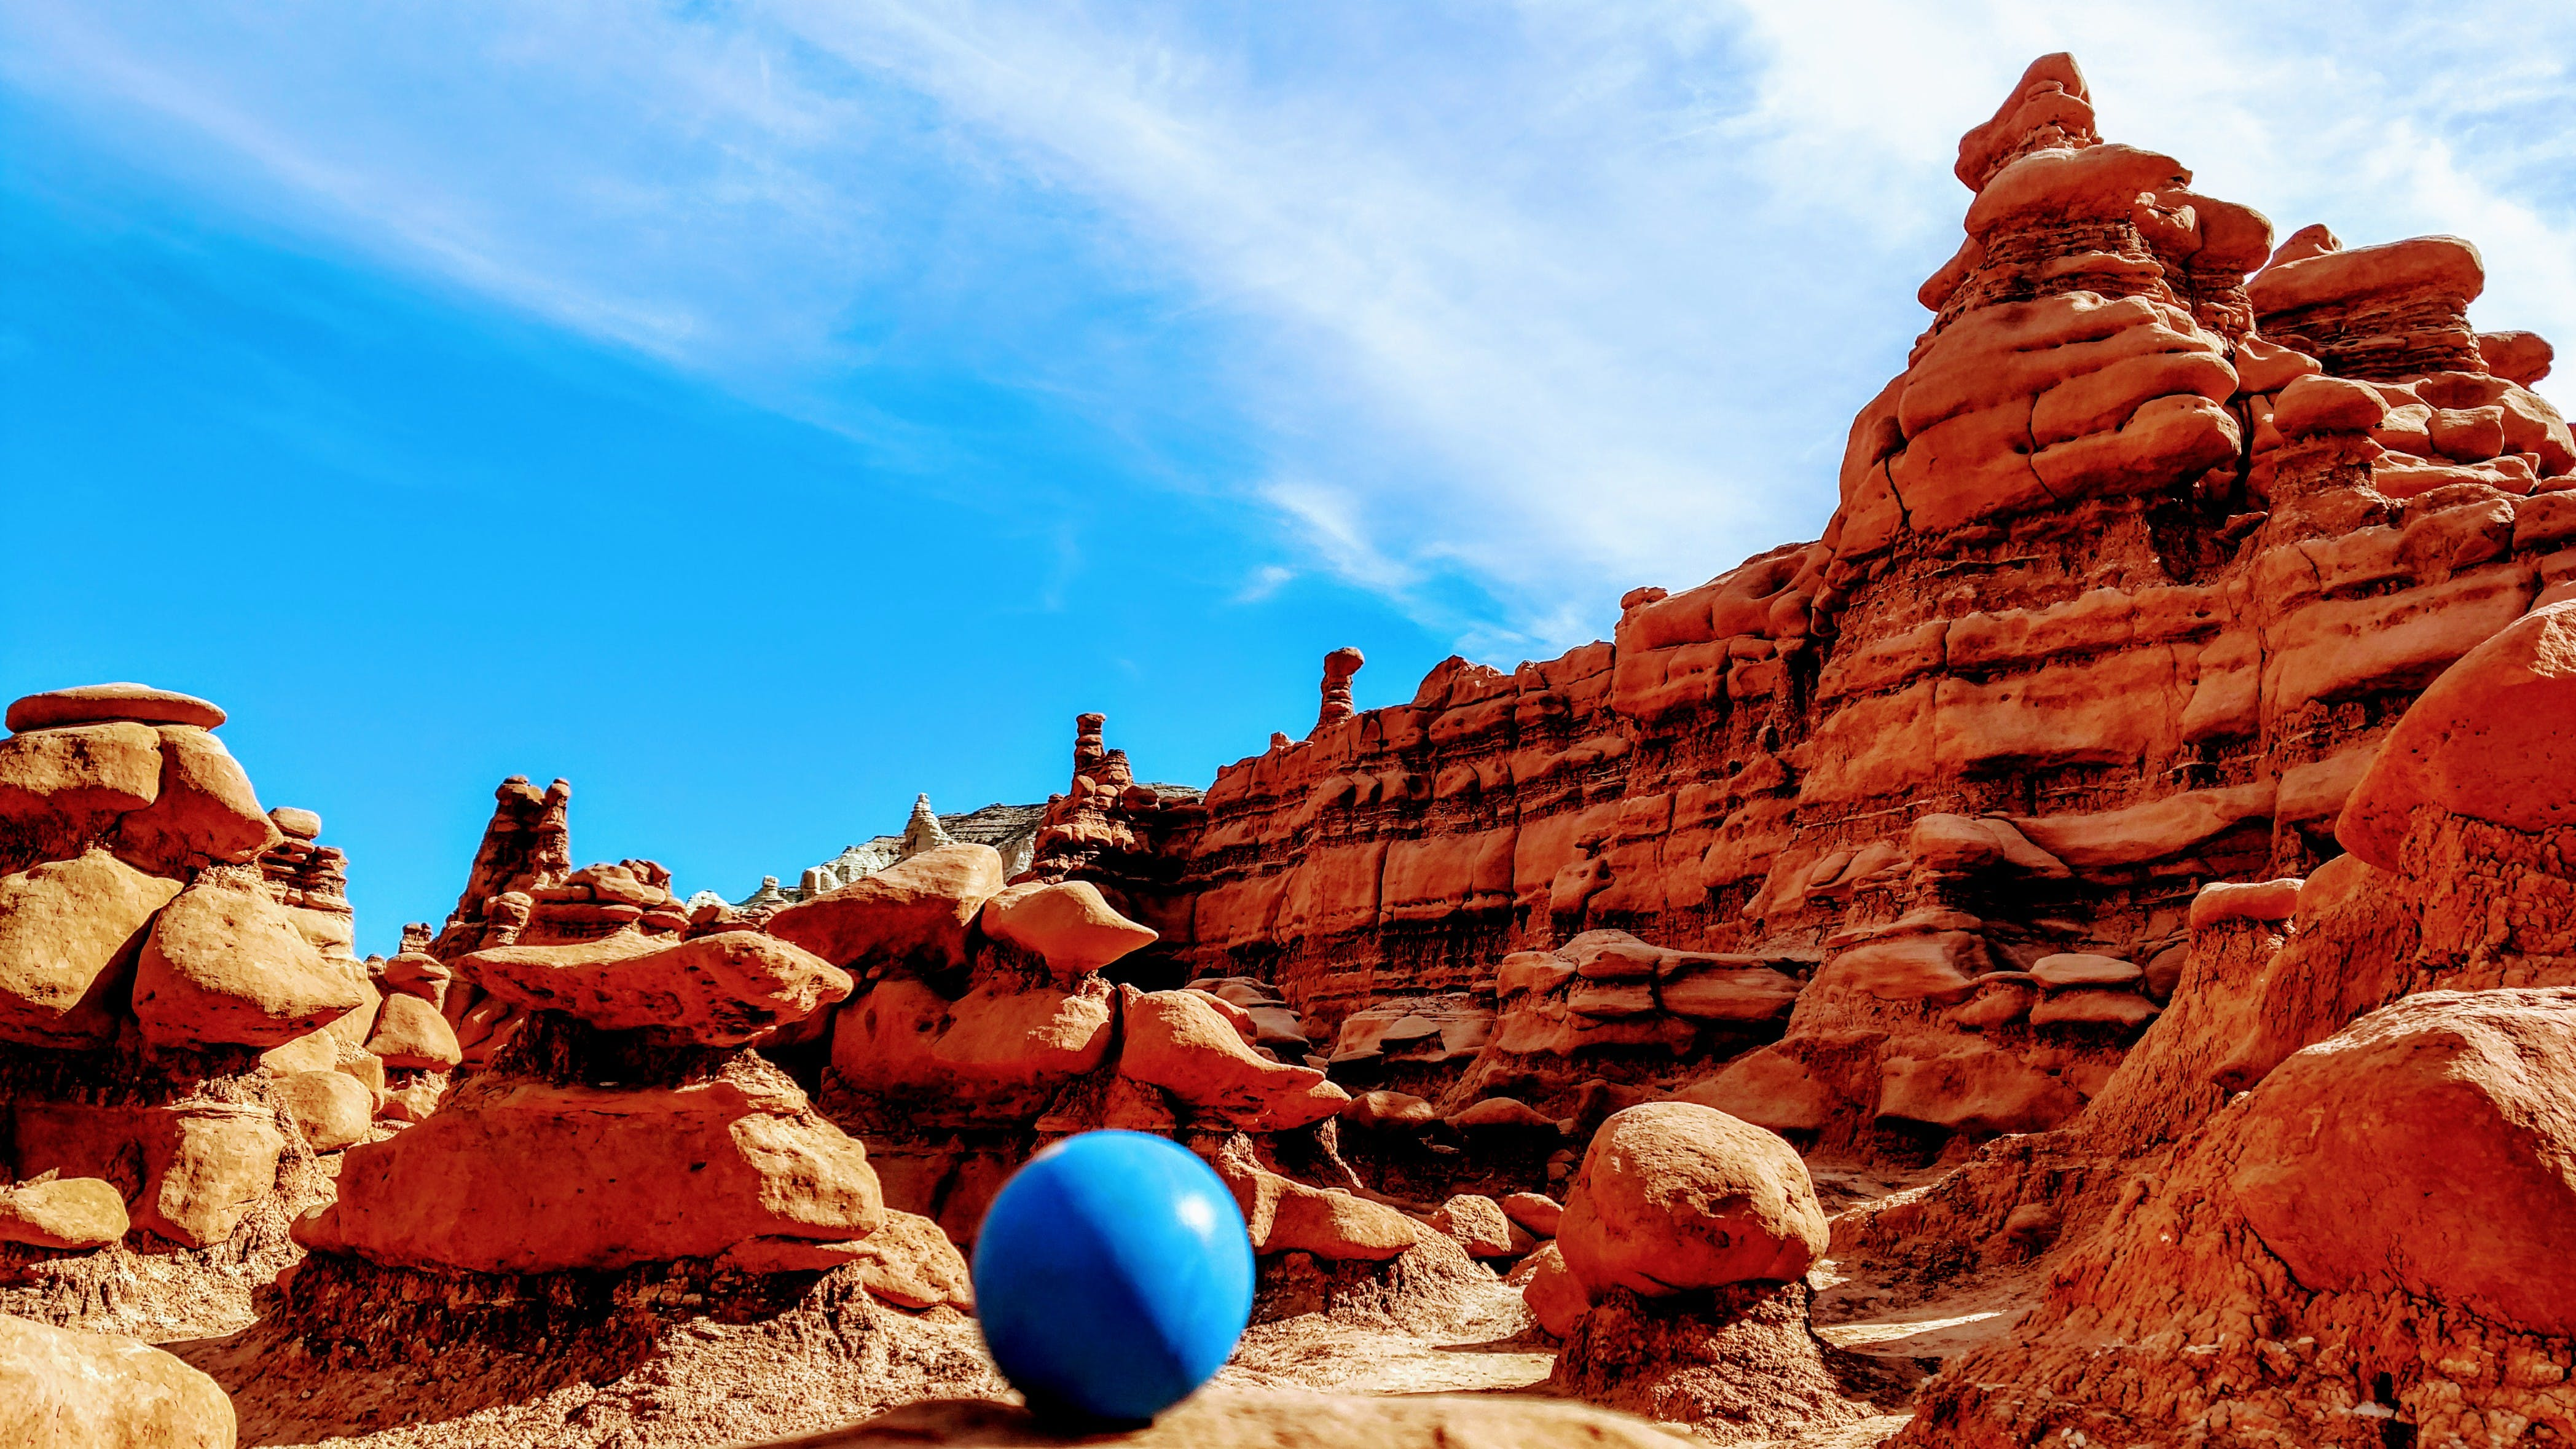 Blue Stability Ball at Rocky Mountains